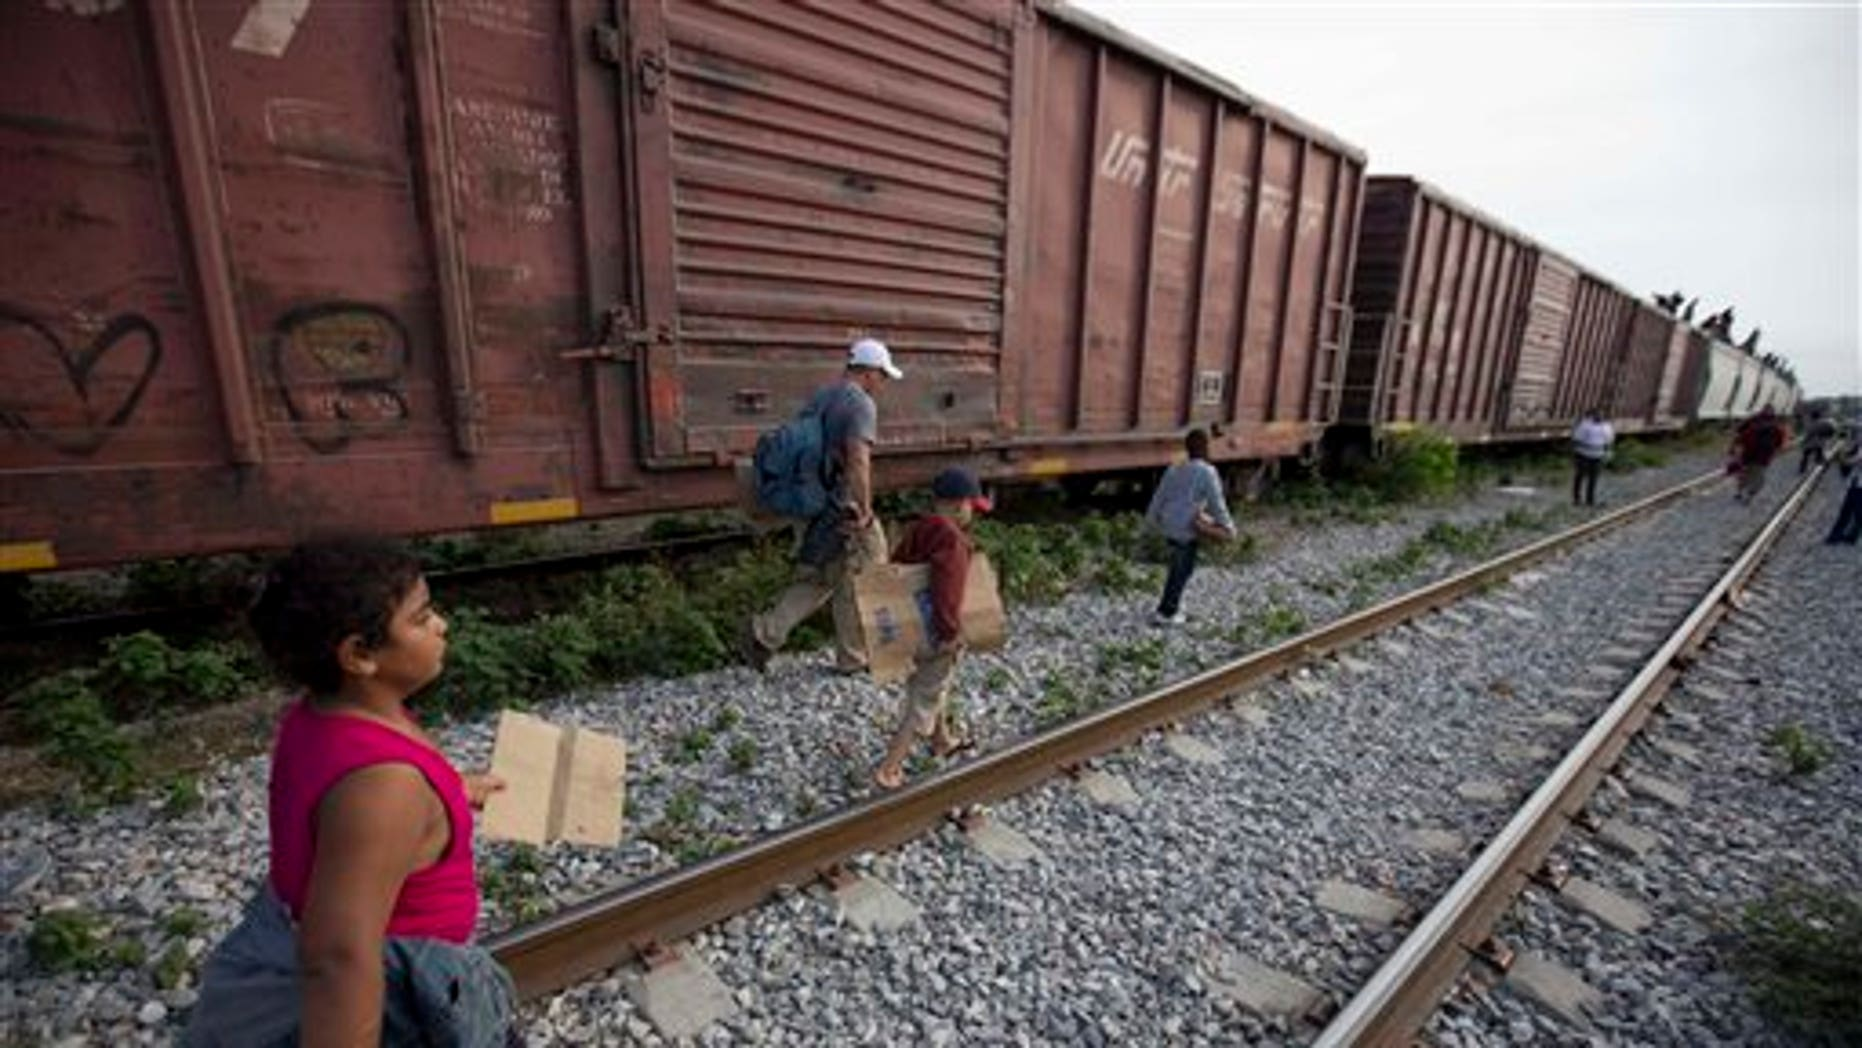 In this July 12, 2014, photo, migrants walk along the rail tracks after getting off a train during their journey toward the U.S.-Mexico border in Ixtepec, Mexico. The surge in unaccompanied minors and women with children migrating from Central America has put new attention on decades-old smuggling organizations.  (AP Photo/Eduardo Verdugo)